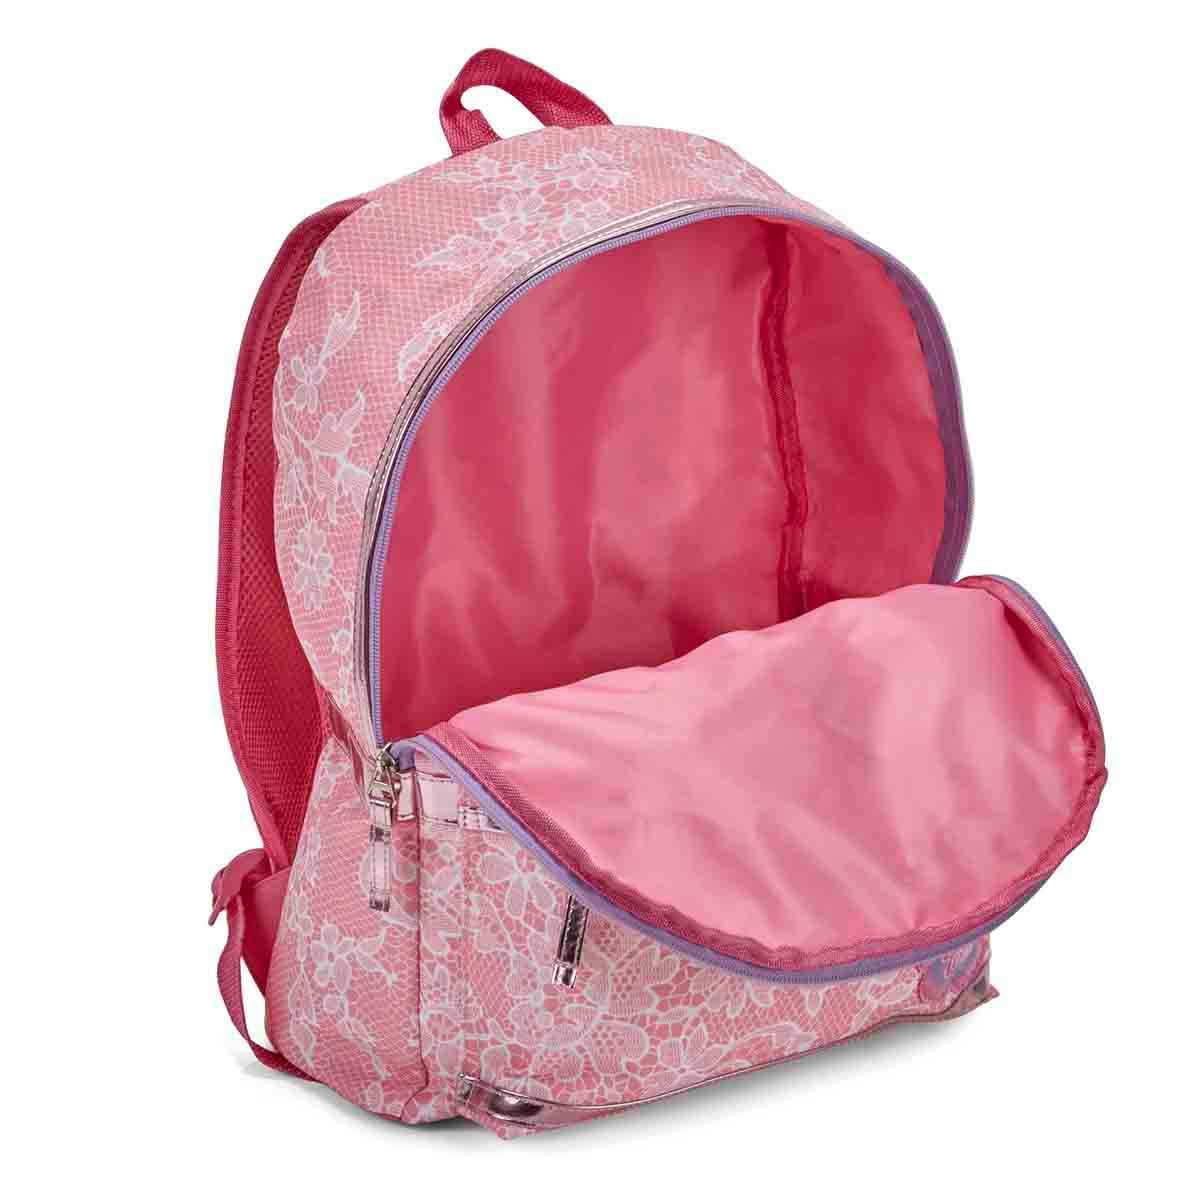 Grls Chantilly rose lace backpack